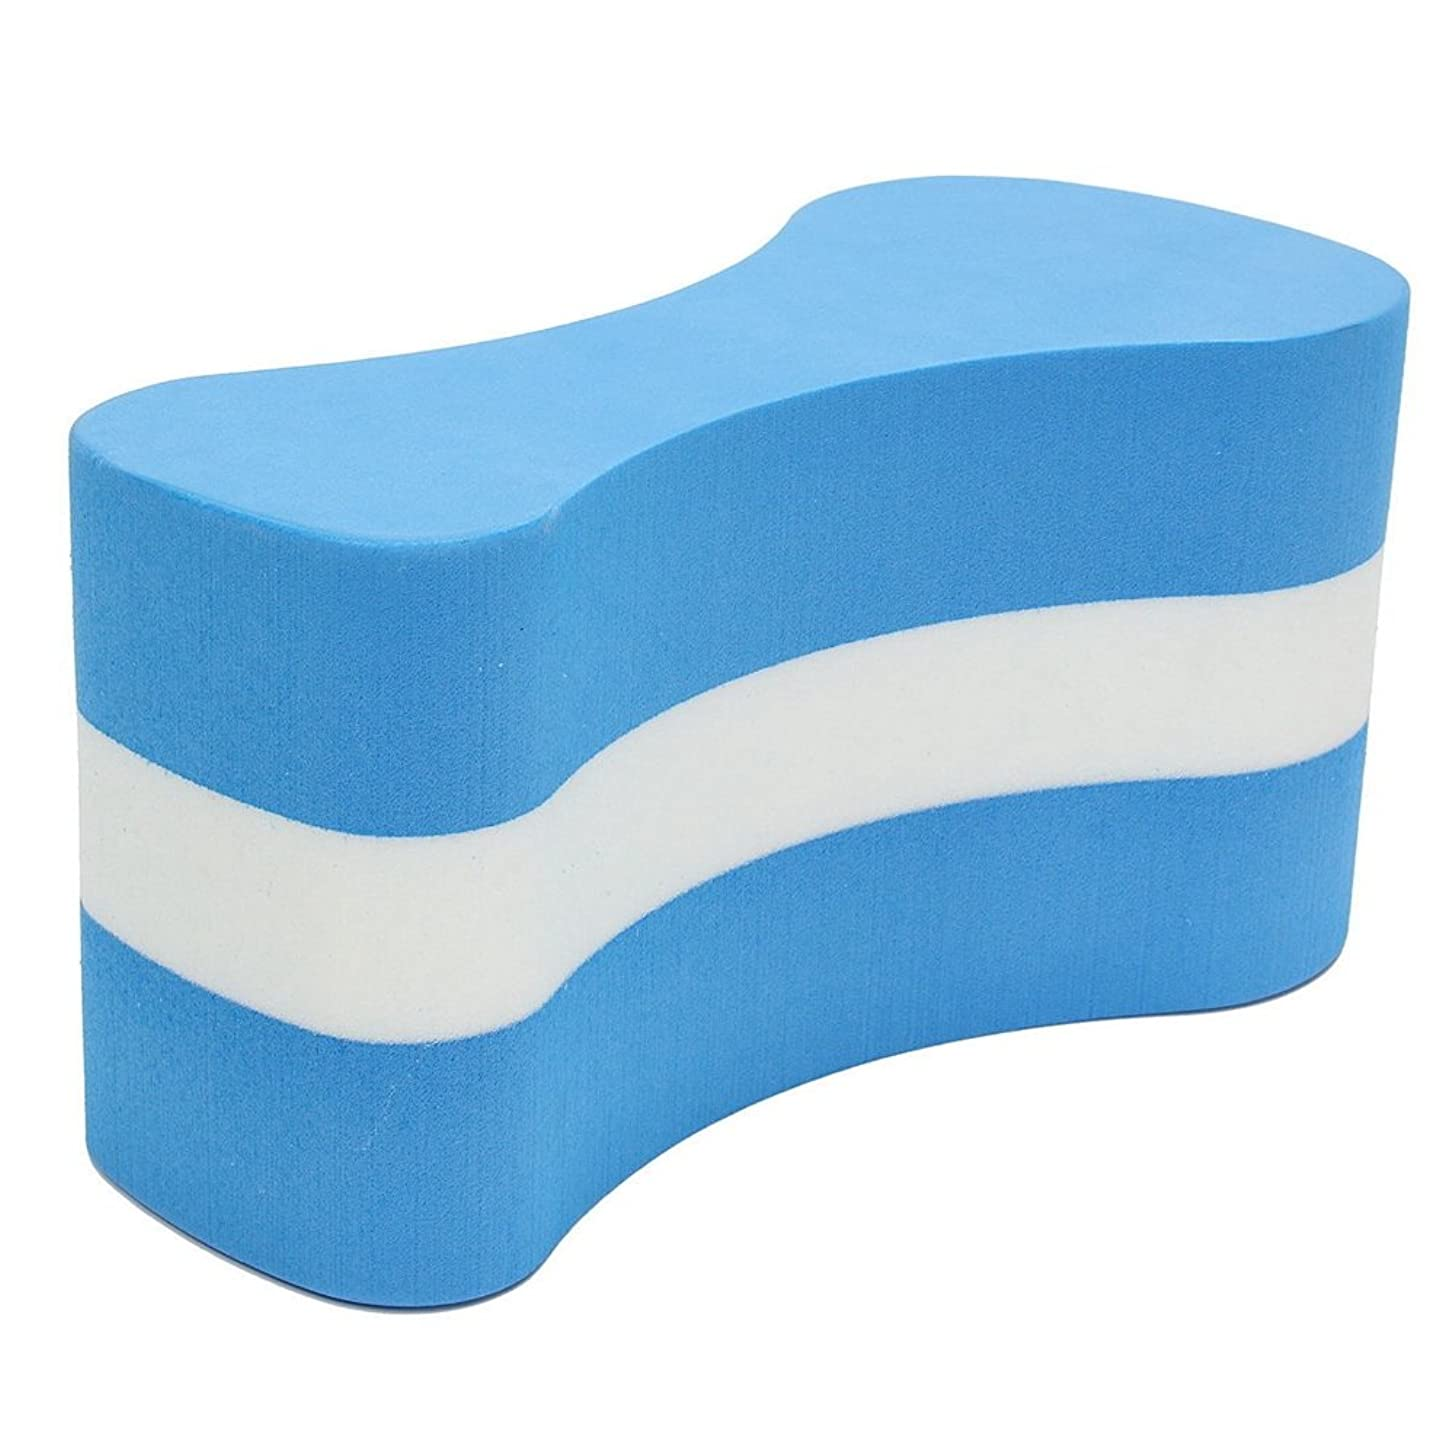 YOTHG Kickboard,Summer Float Kickboard Kids Adults Pool Swimming Safety Training Aid Swim Training Equipment